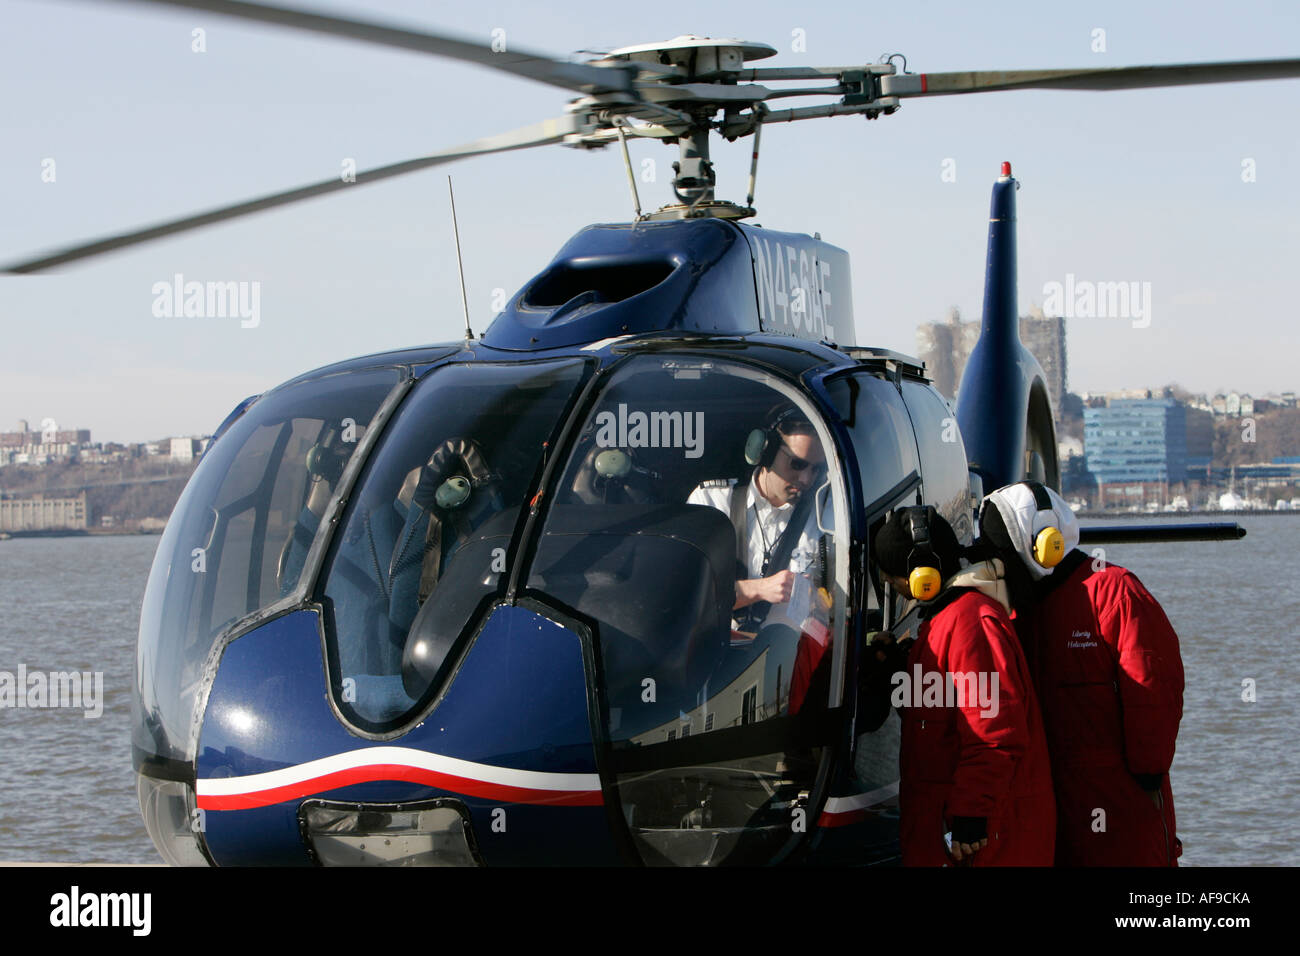 EC130 american eurocopter pilot checks with two members of ground crew at liberty helicopters sightseeing tours - Stock Image